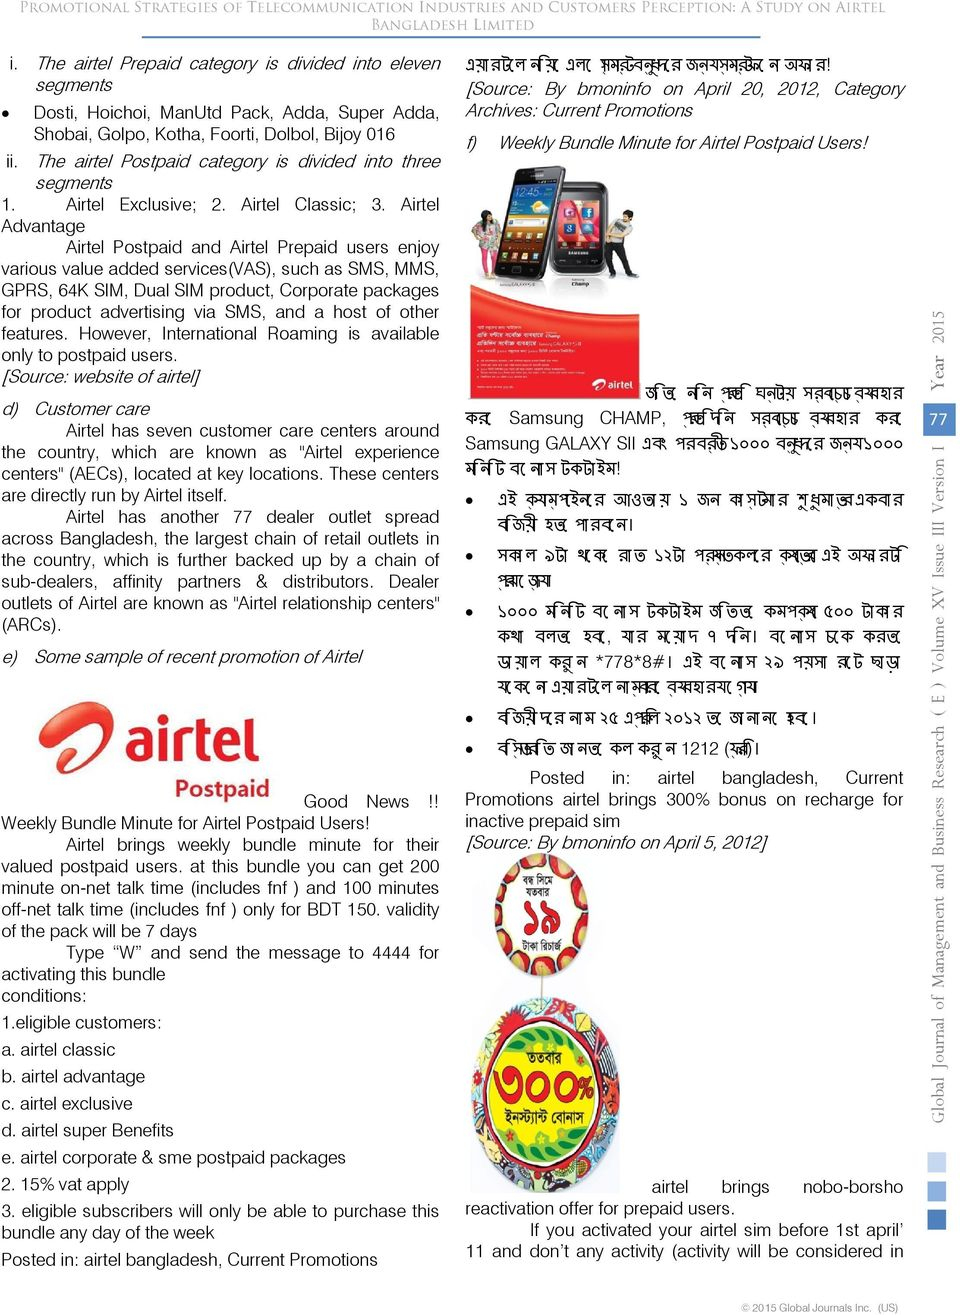 Airtel Advantage Airtel Postpaid and Airtel Prepaid users enjoy various value added services(vas), such as SMS, MMS, GPRS, K SIM, Dual SIM product, Corporate packages for product advertising via SMS,